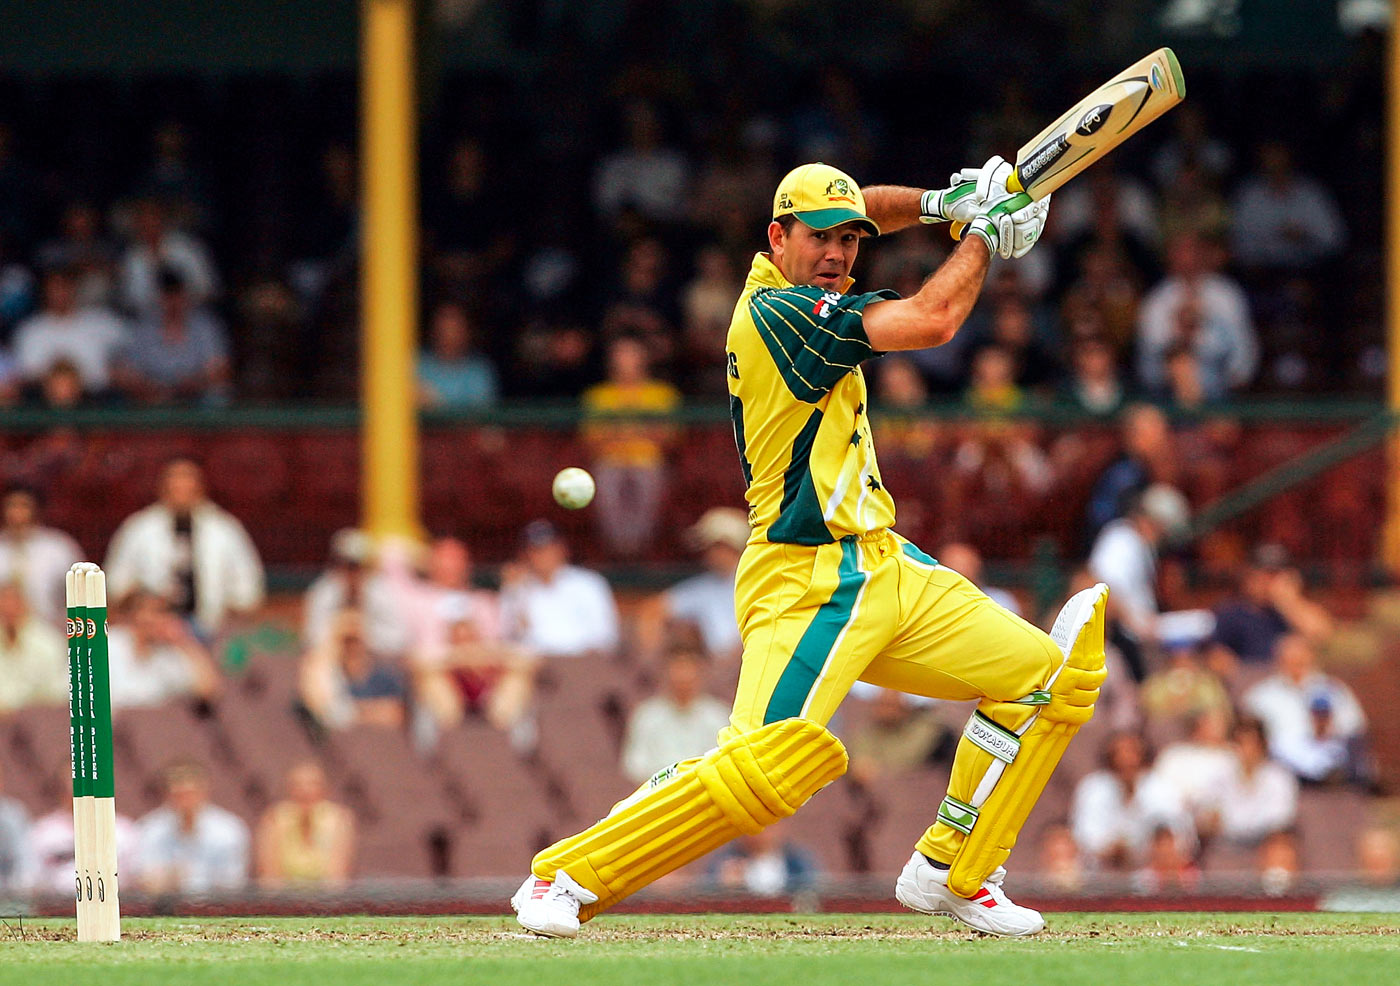 Ricky Pointing Most Sixes in ODI KreedOn